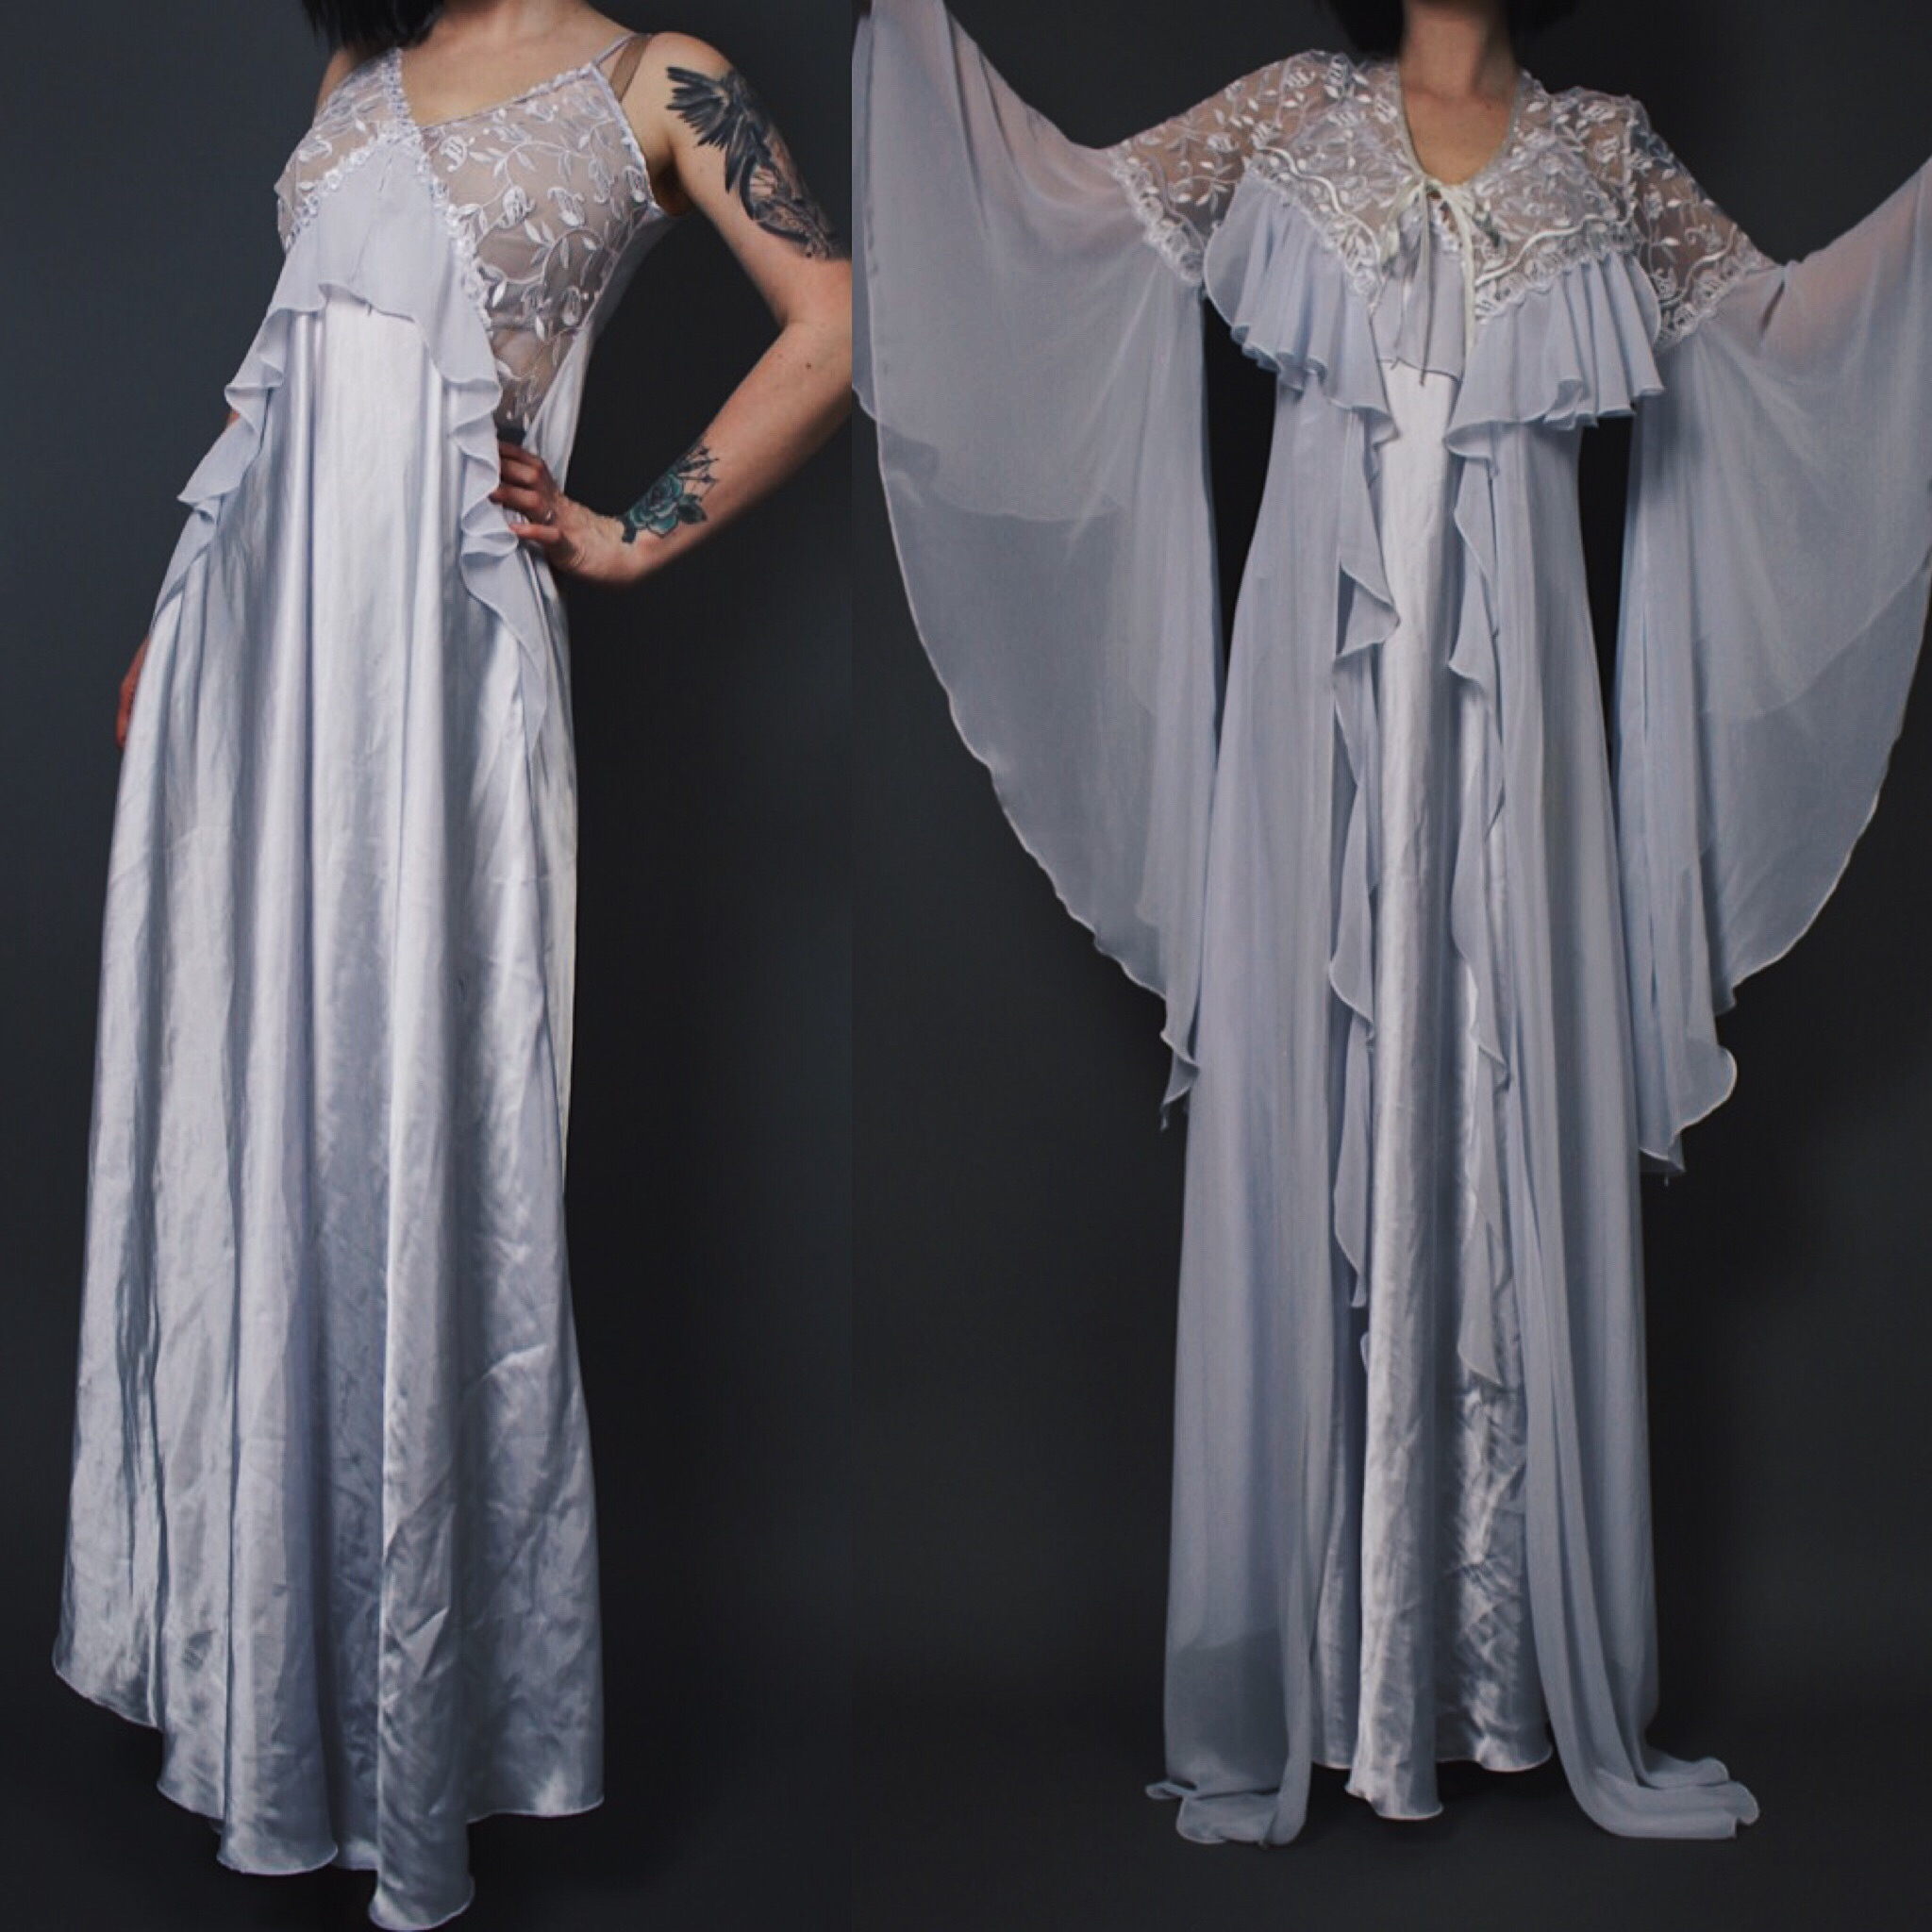 983071480eed CLAIMED @jamie.higgins._ - Vintage 80s Silver-Blue Satin and Lace ...